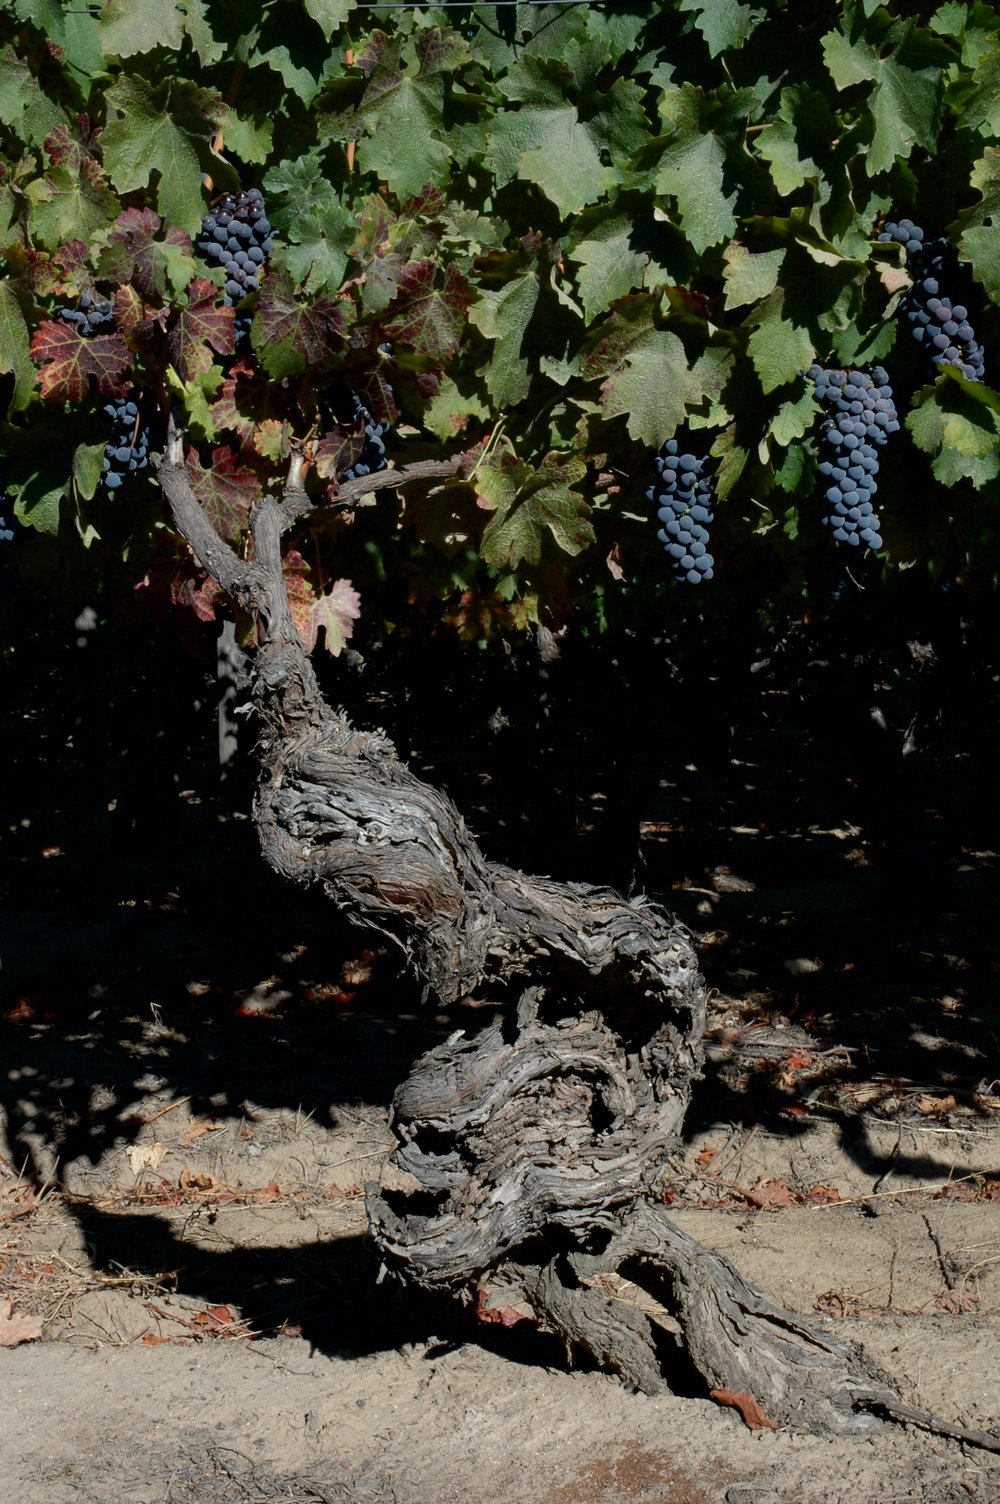 Old vines from the Neyen vineyards in the Apalta Valley of central Chile.